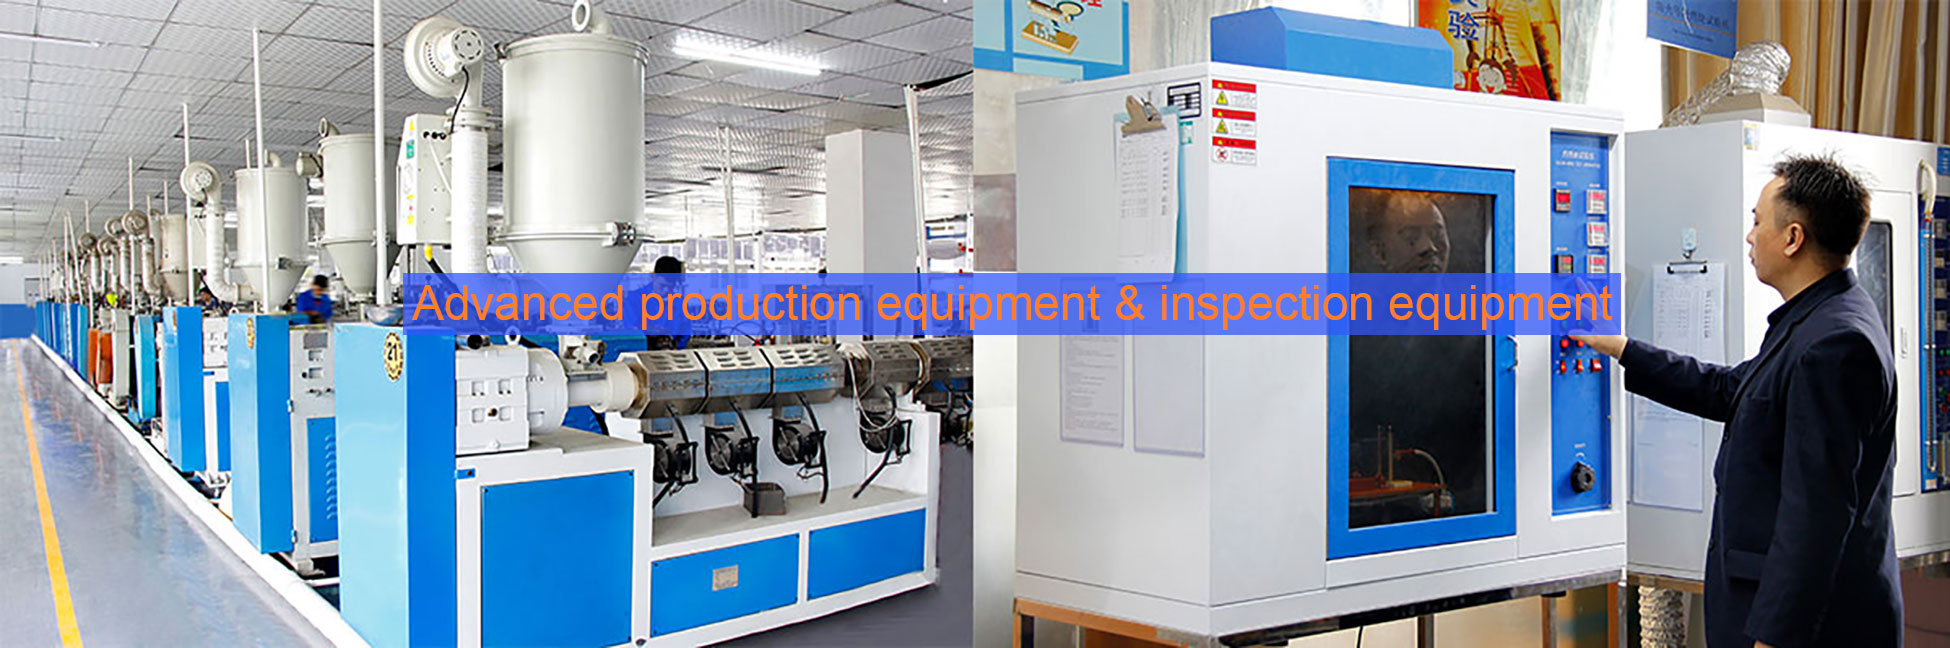 Advanced production equipment and inspection equipment